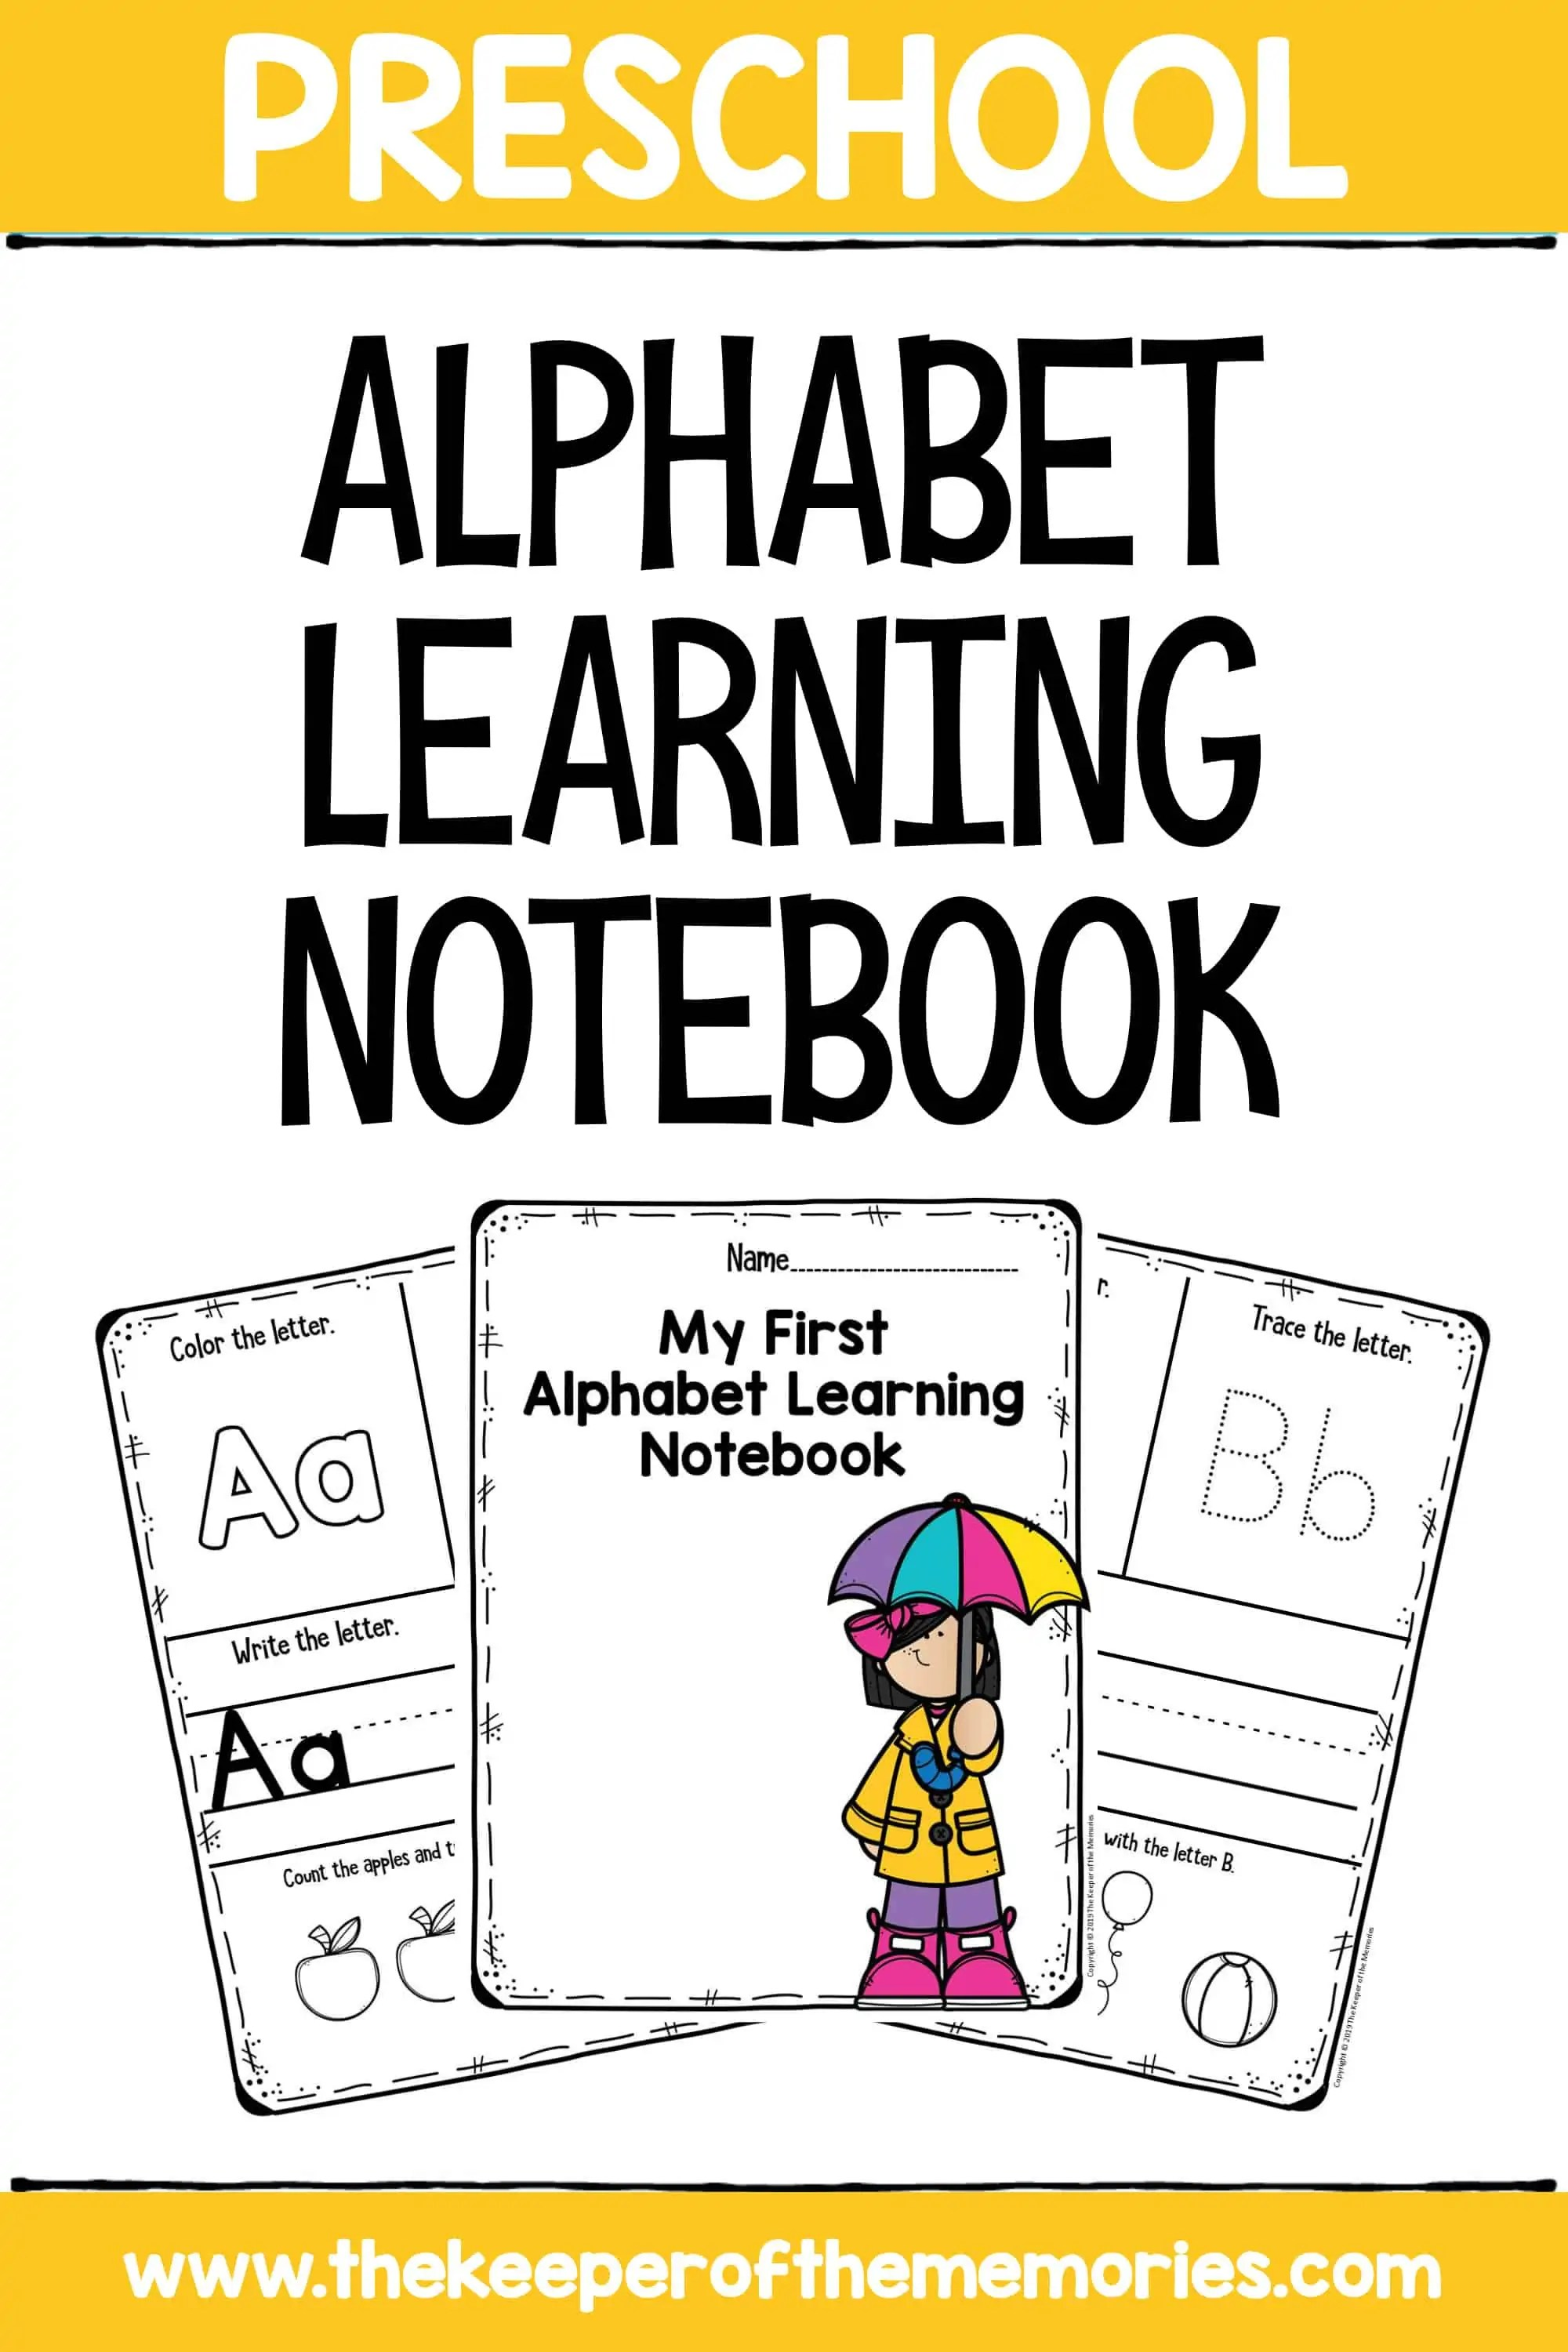 Preschool Alphabet Learning Notebook